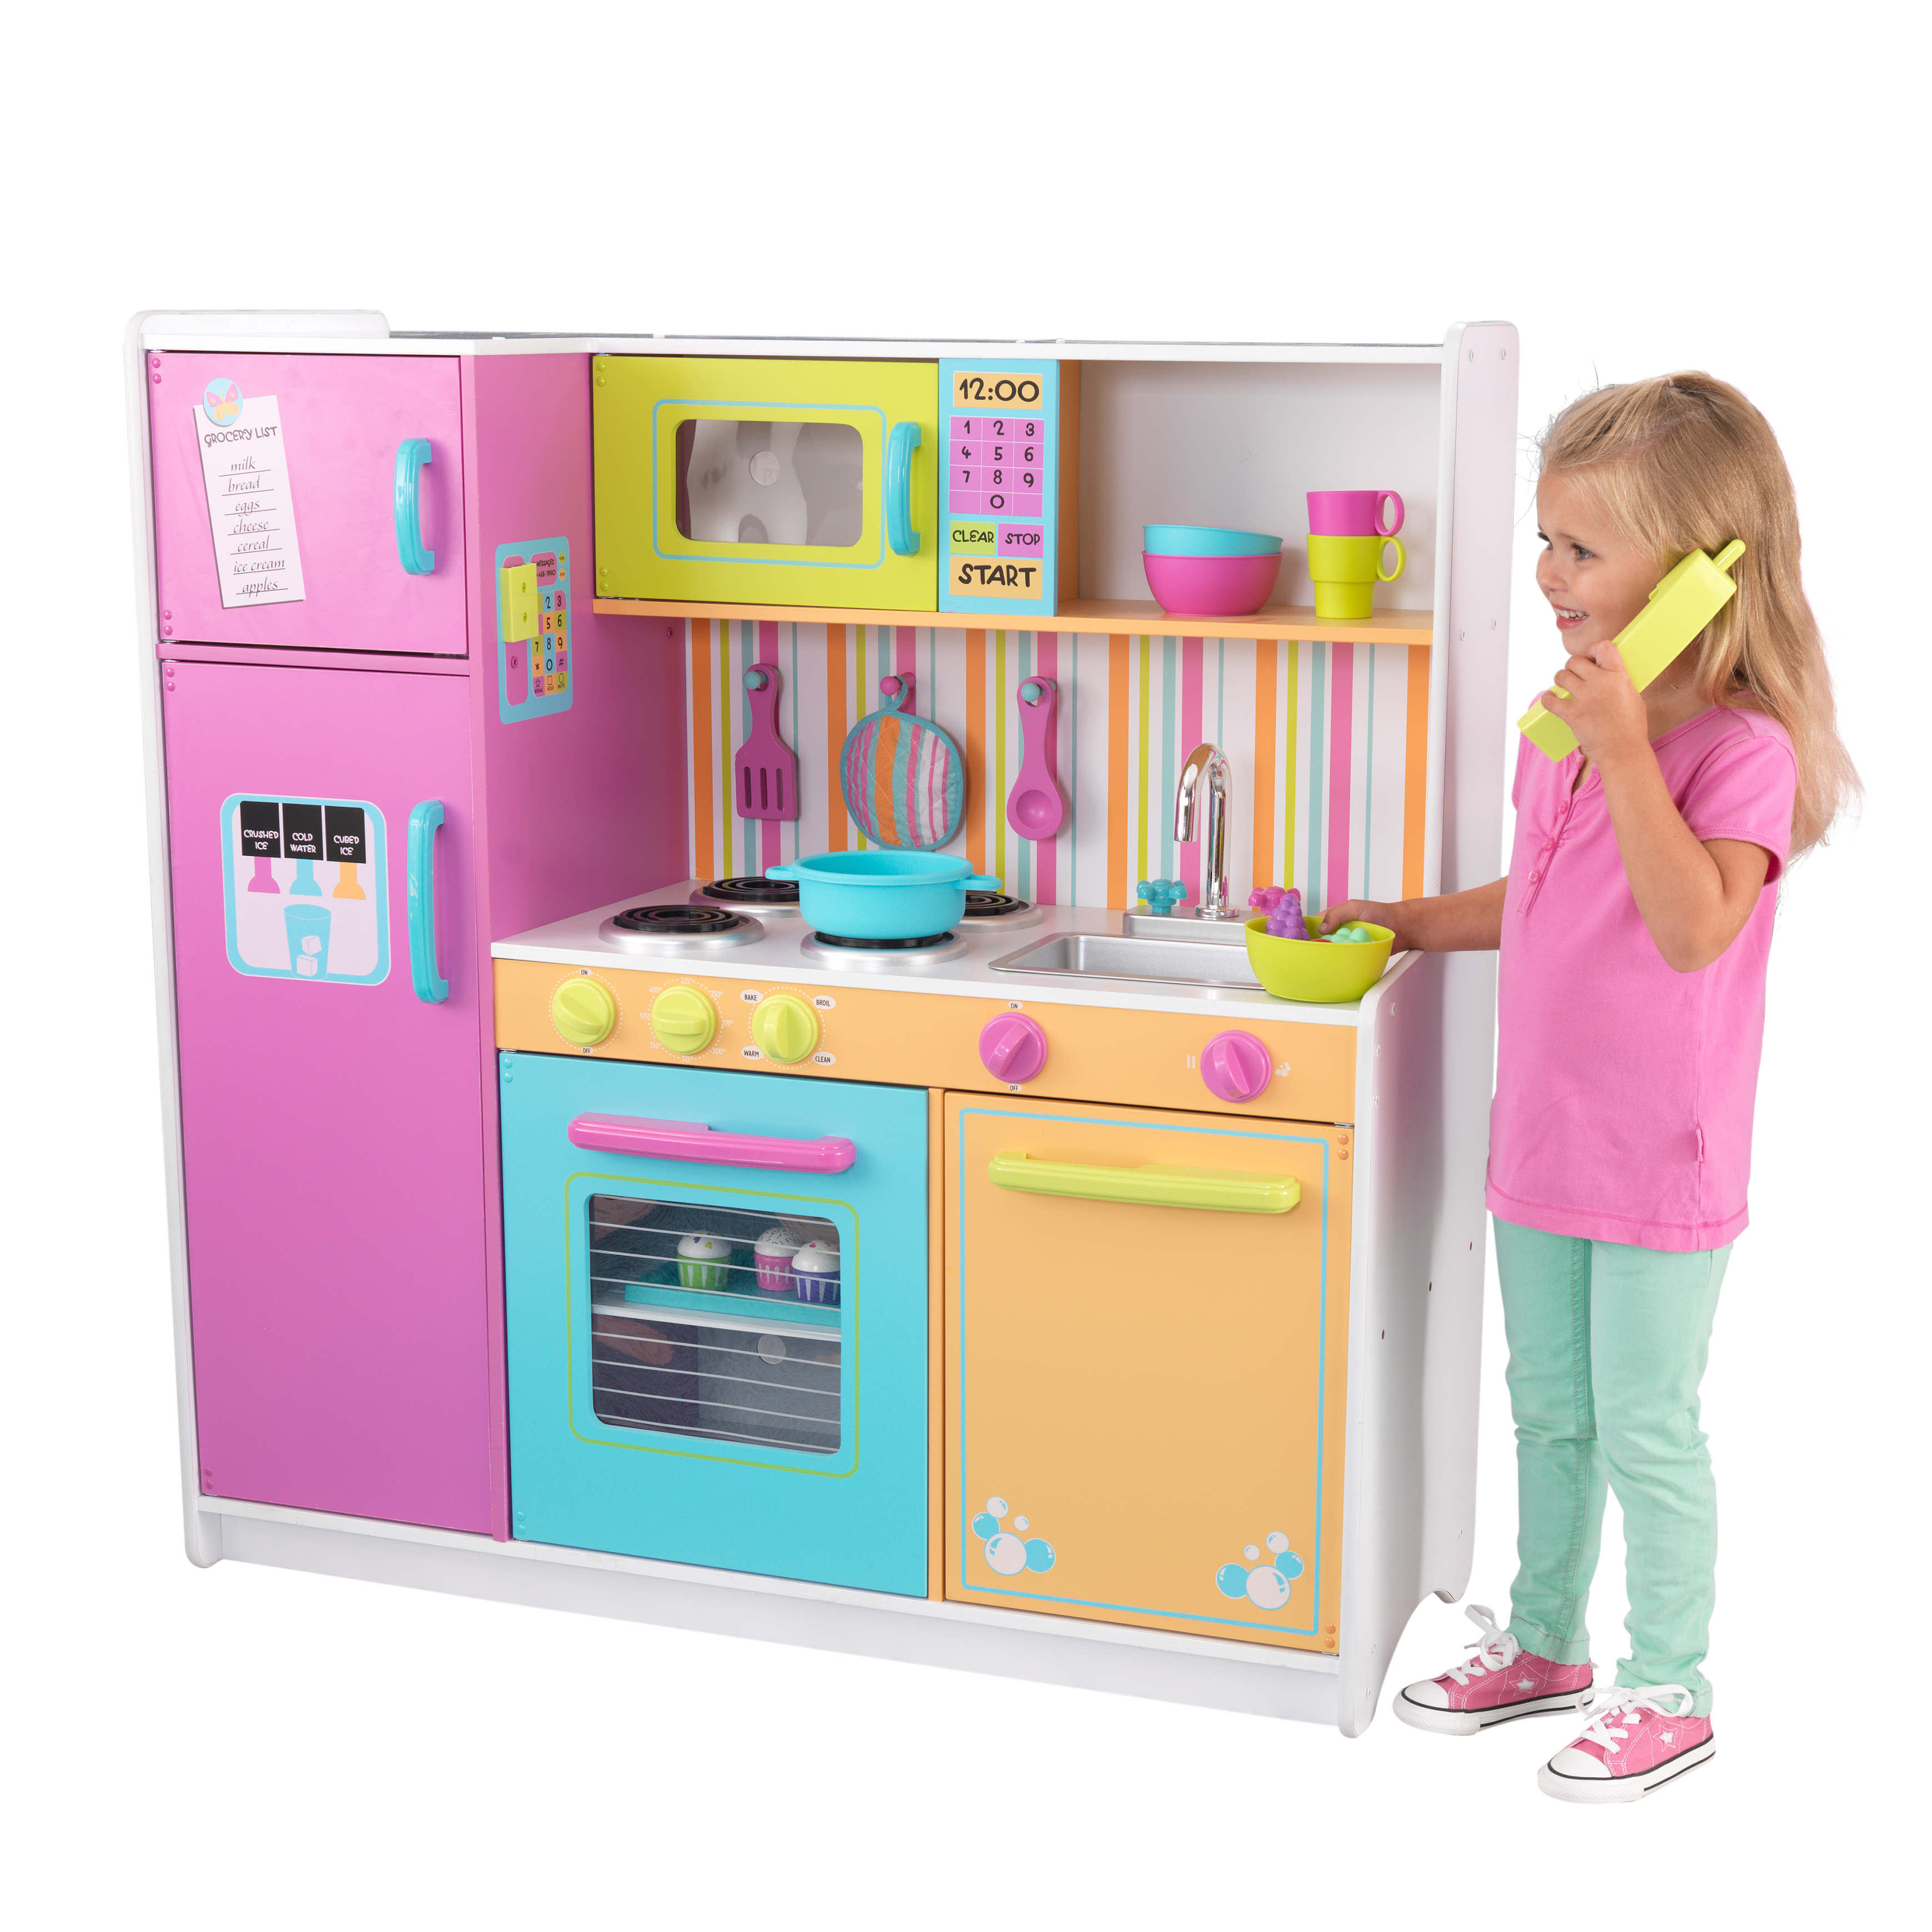 KidKraft Deluxe Big and Bright Kitchen by KidKraft